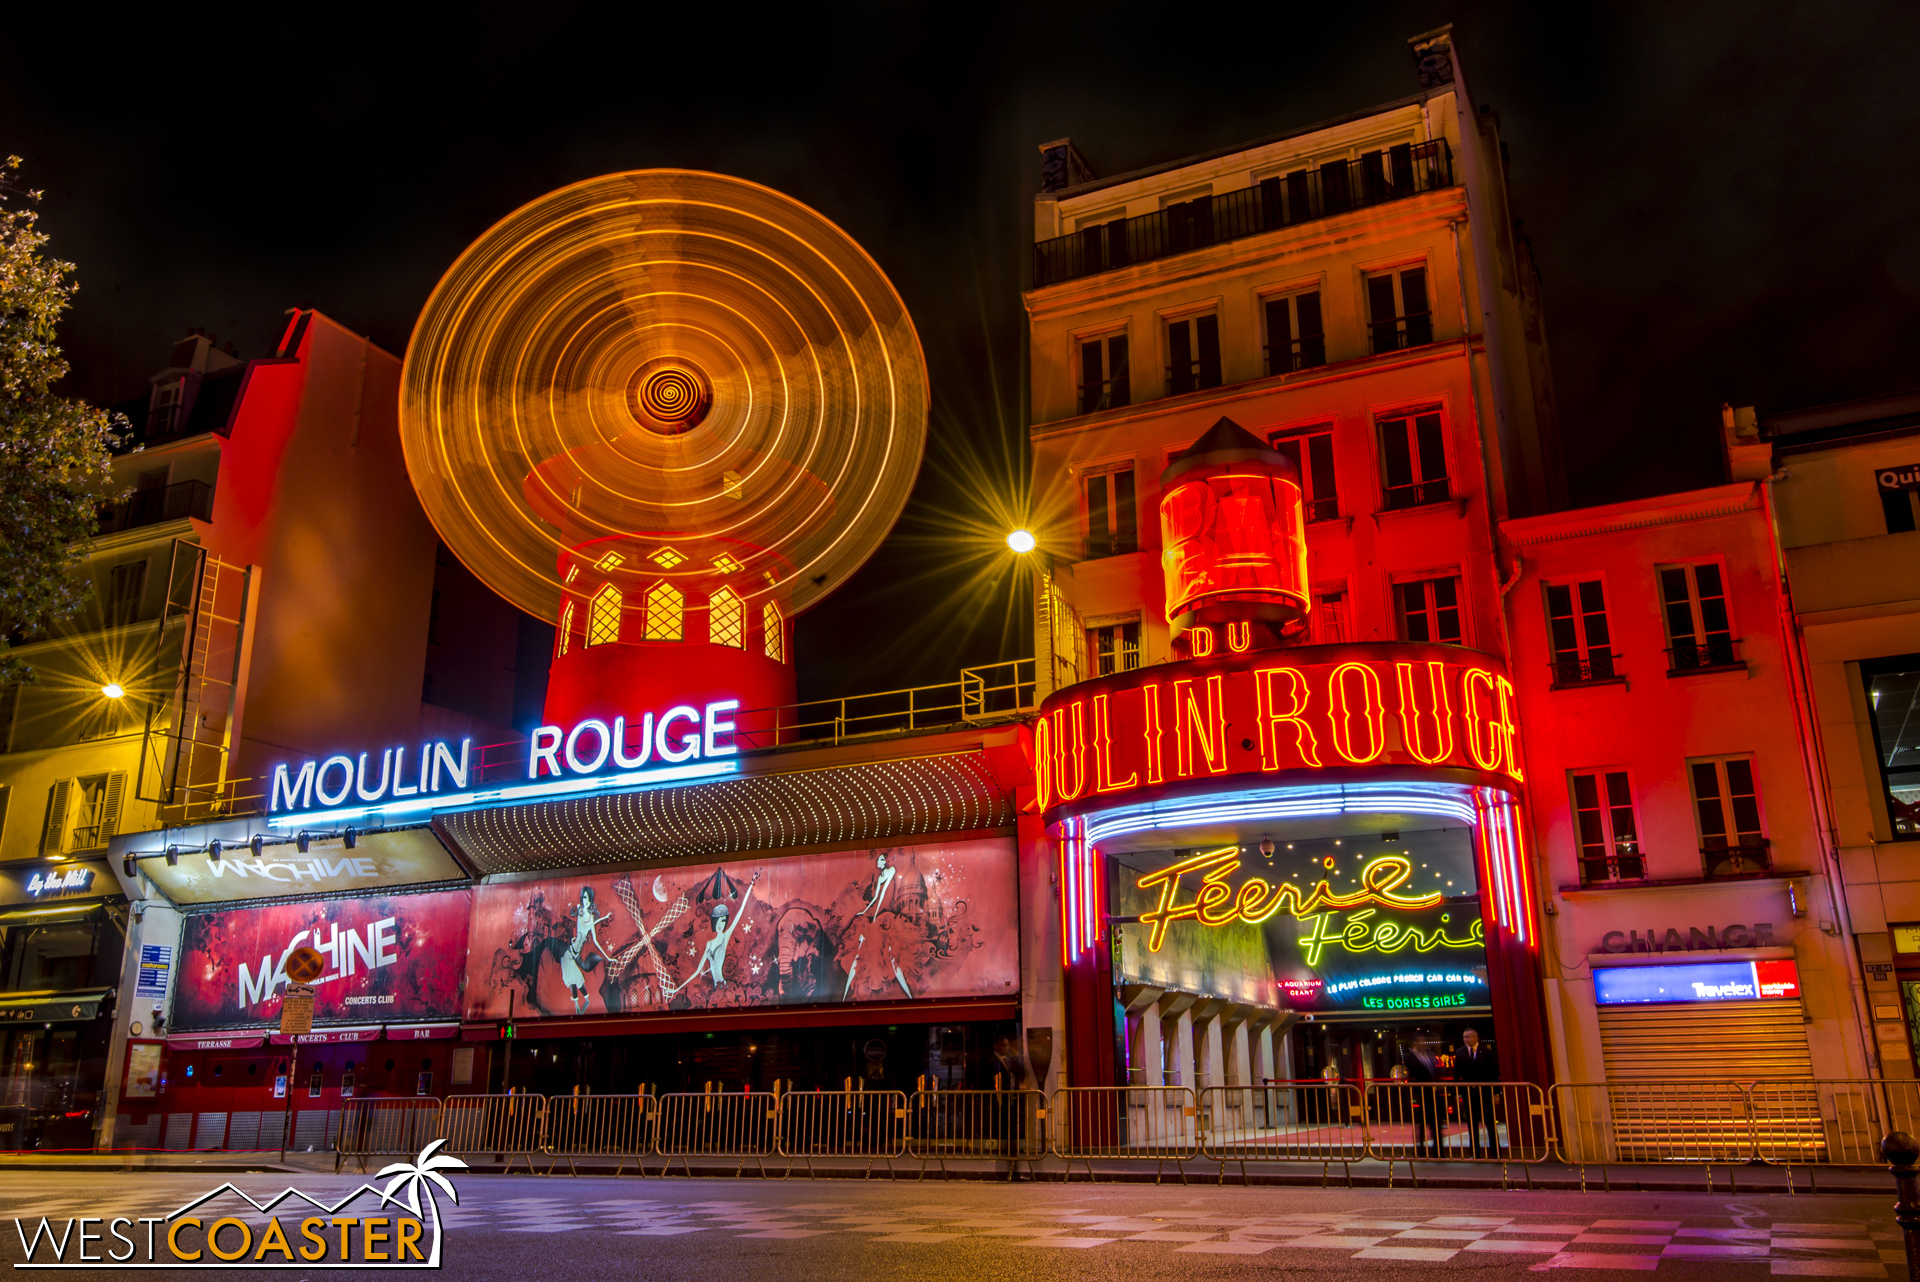 The bright lights and whirling iconic windmill of the Moulin Rouge, still operating to this day.